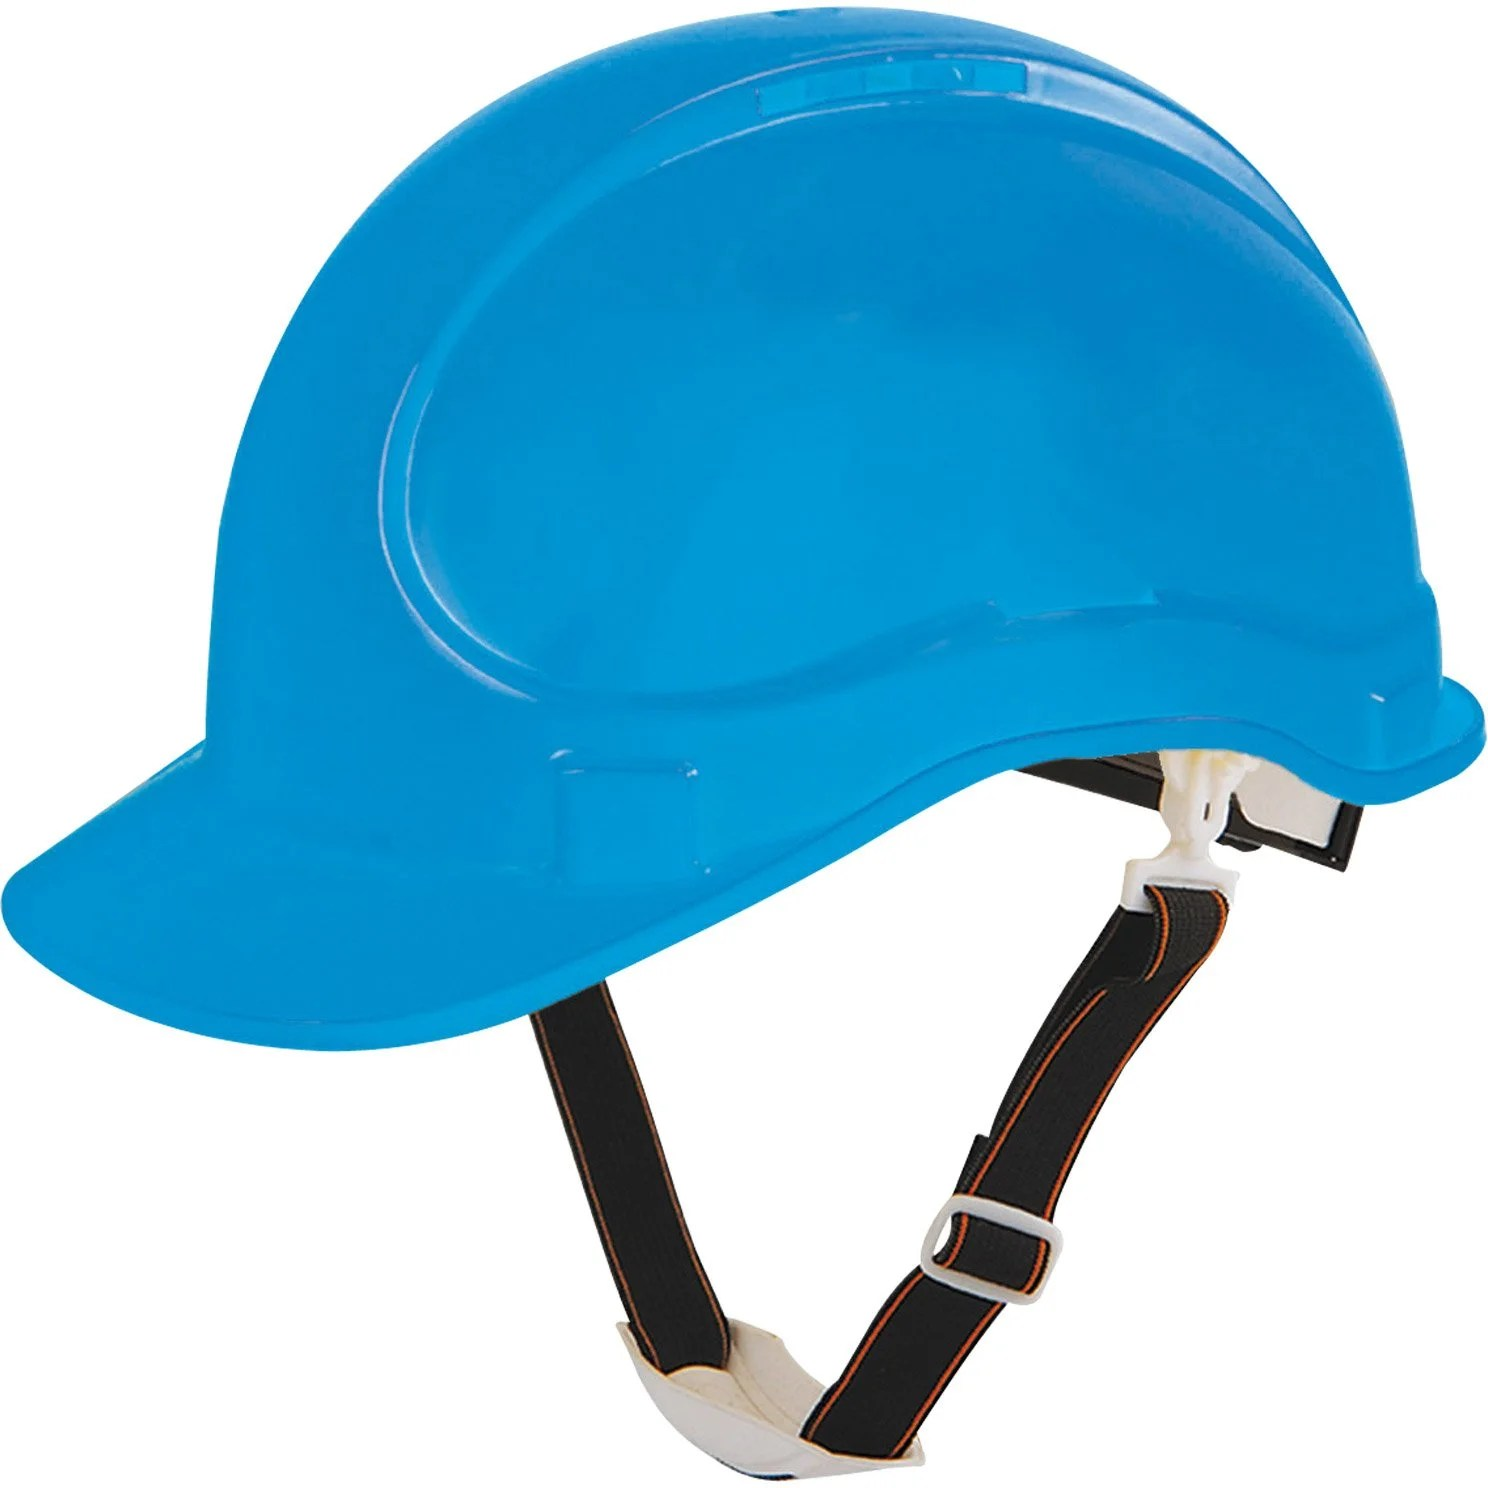 Casque De Protection Casque De Protection Antiheurt | Leroy Merlin